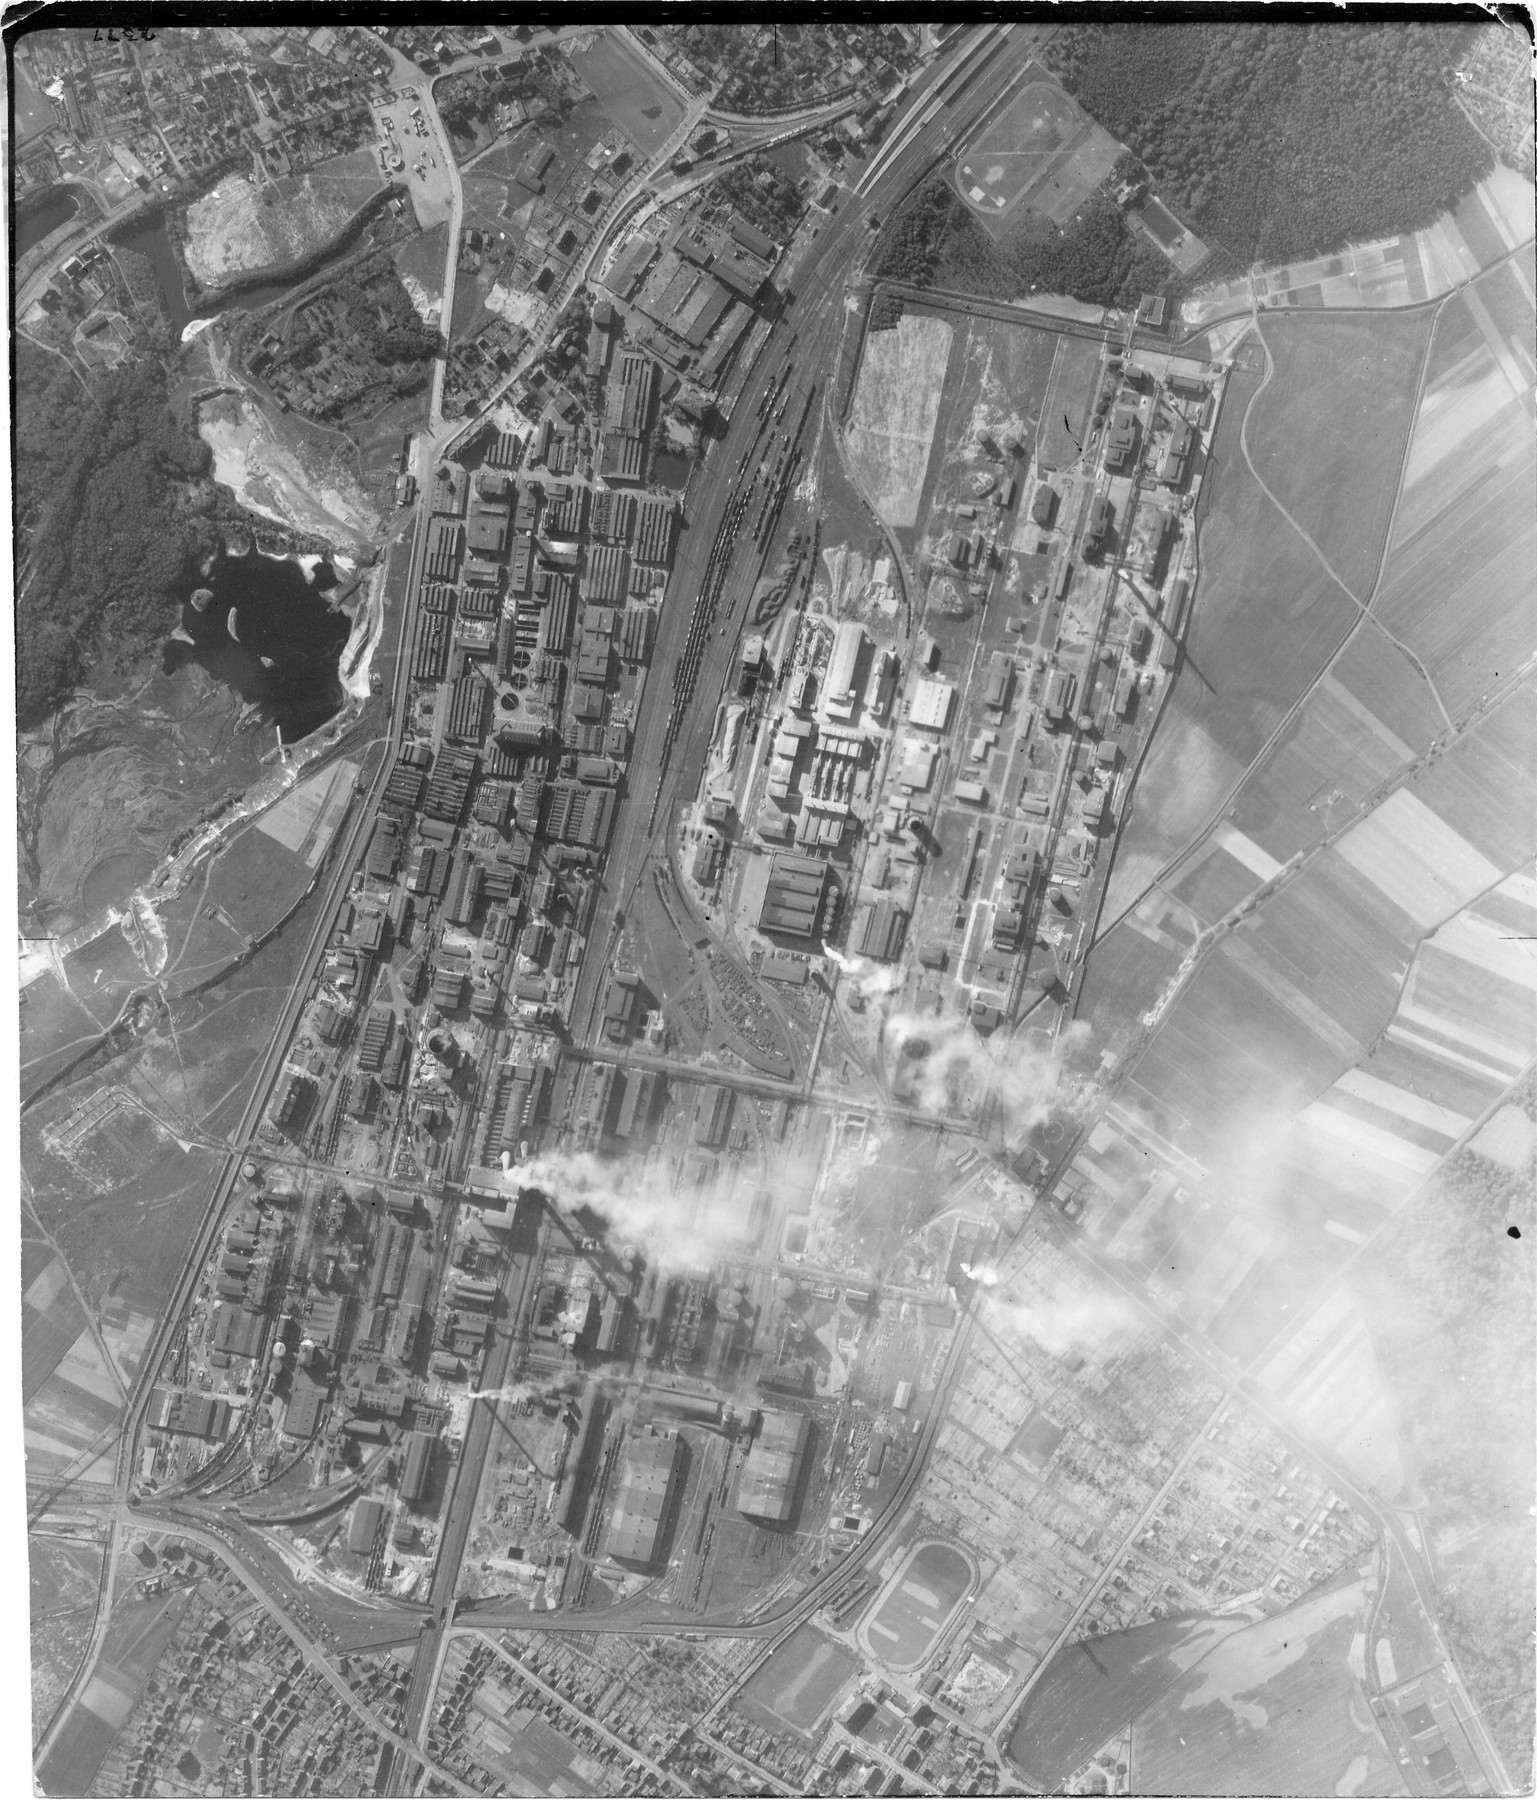 usaaaf-7pg22fs-aerial-recon-photo-to-bitterfeld-5-germany-may-30-1944-01.jpg